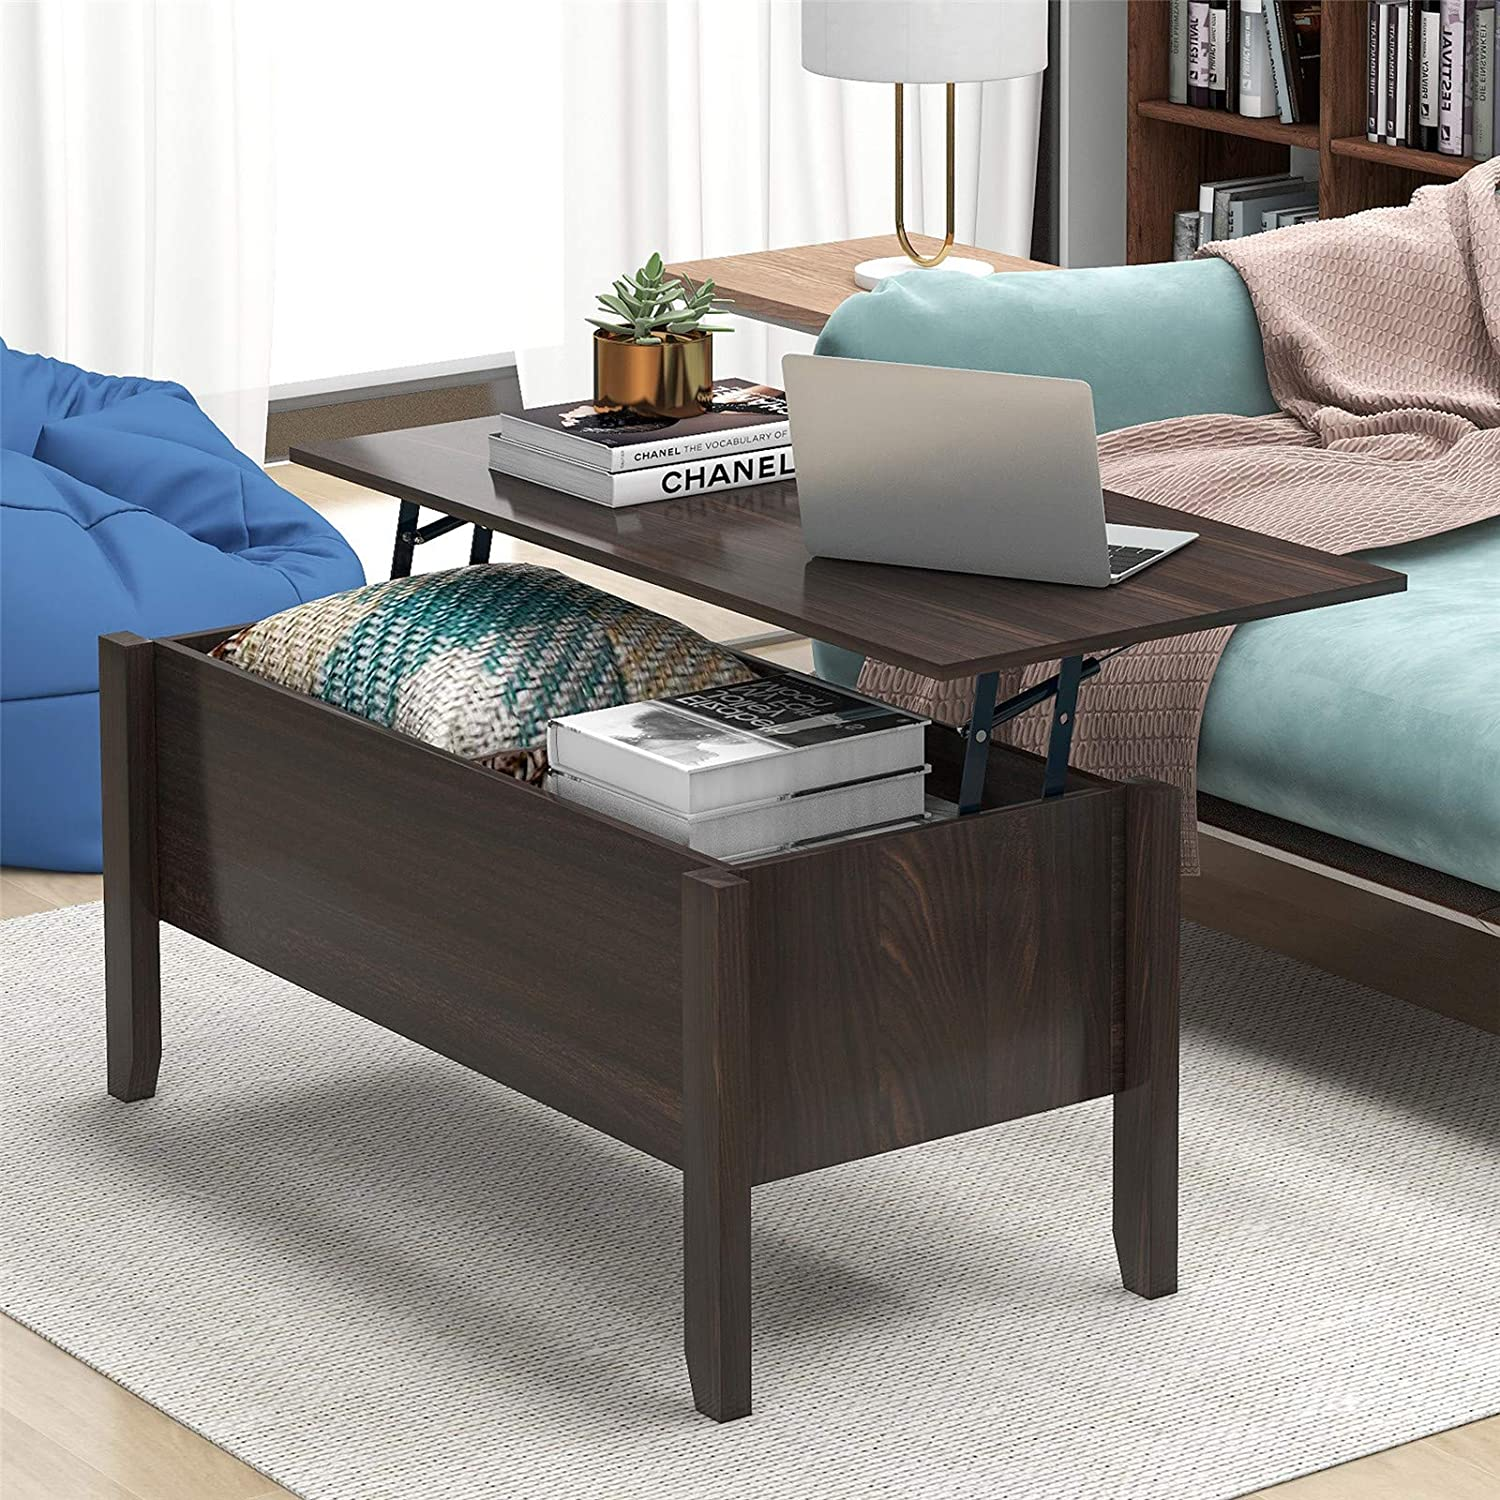 Lift 全国どこでも送料無料 Top Coffee 通販 激安◆ Table with Hidden Woo Solid Compartment Storage